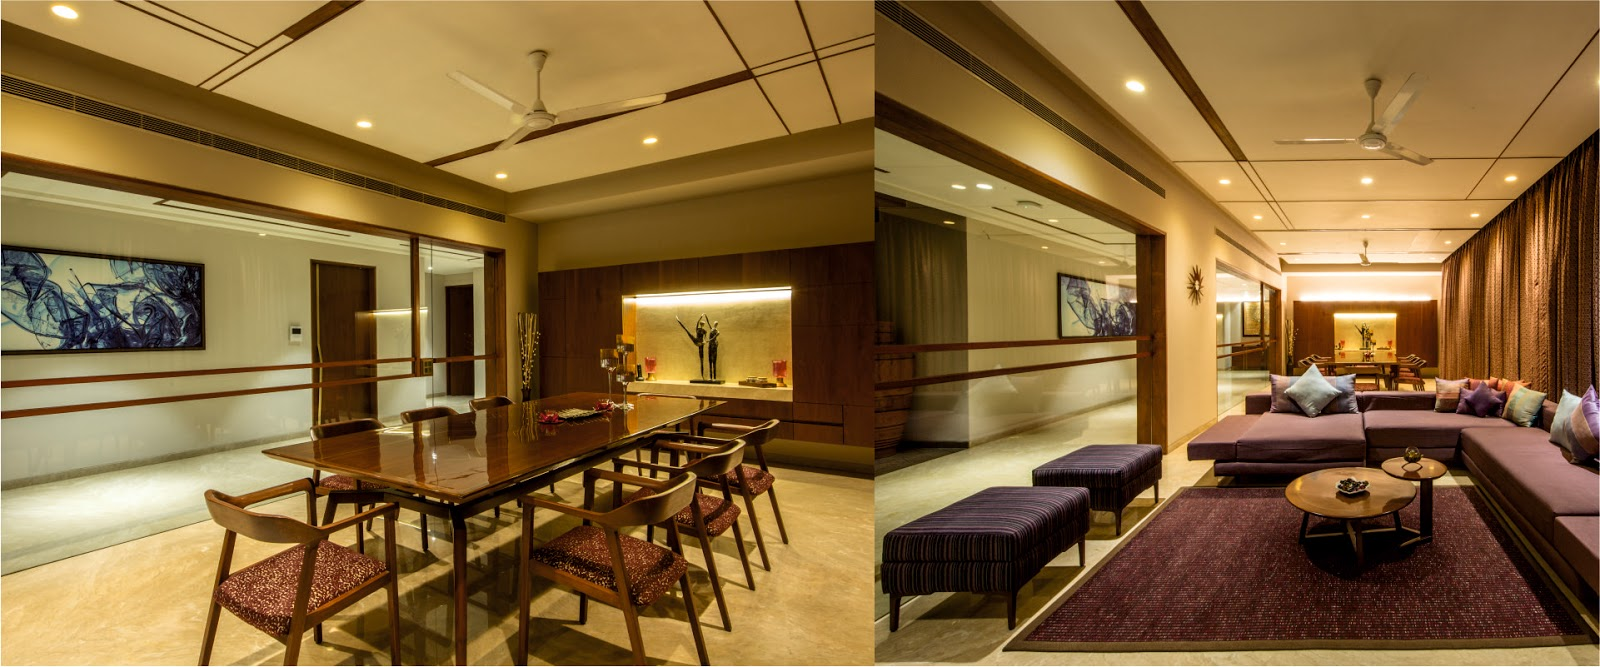 Top Architects In Ahmedabad Interior Design For Home In Ahmedabad